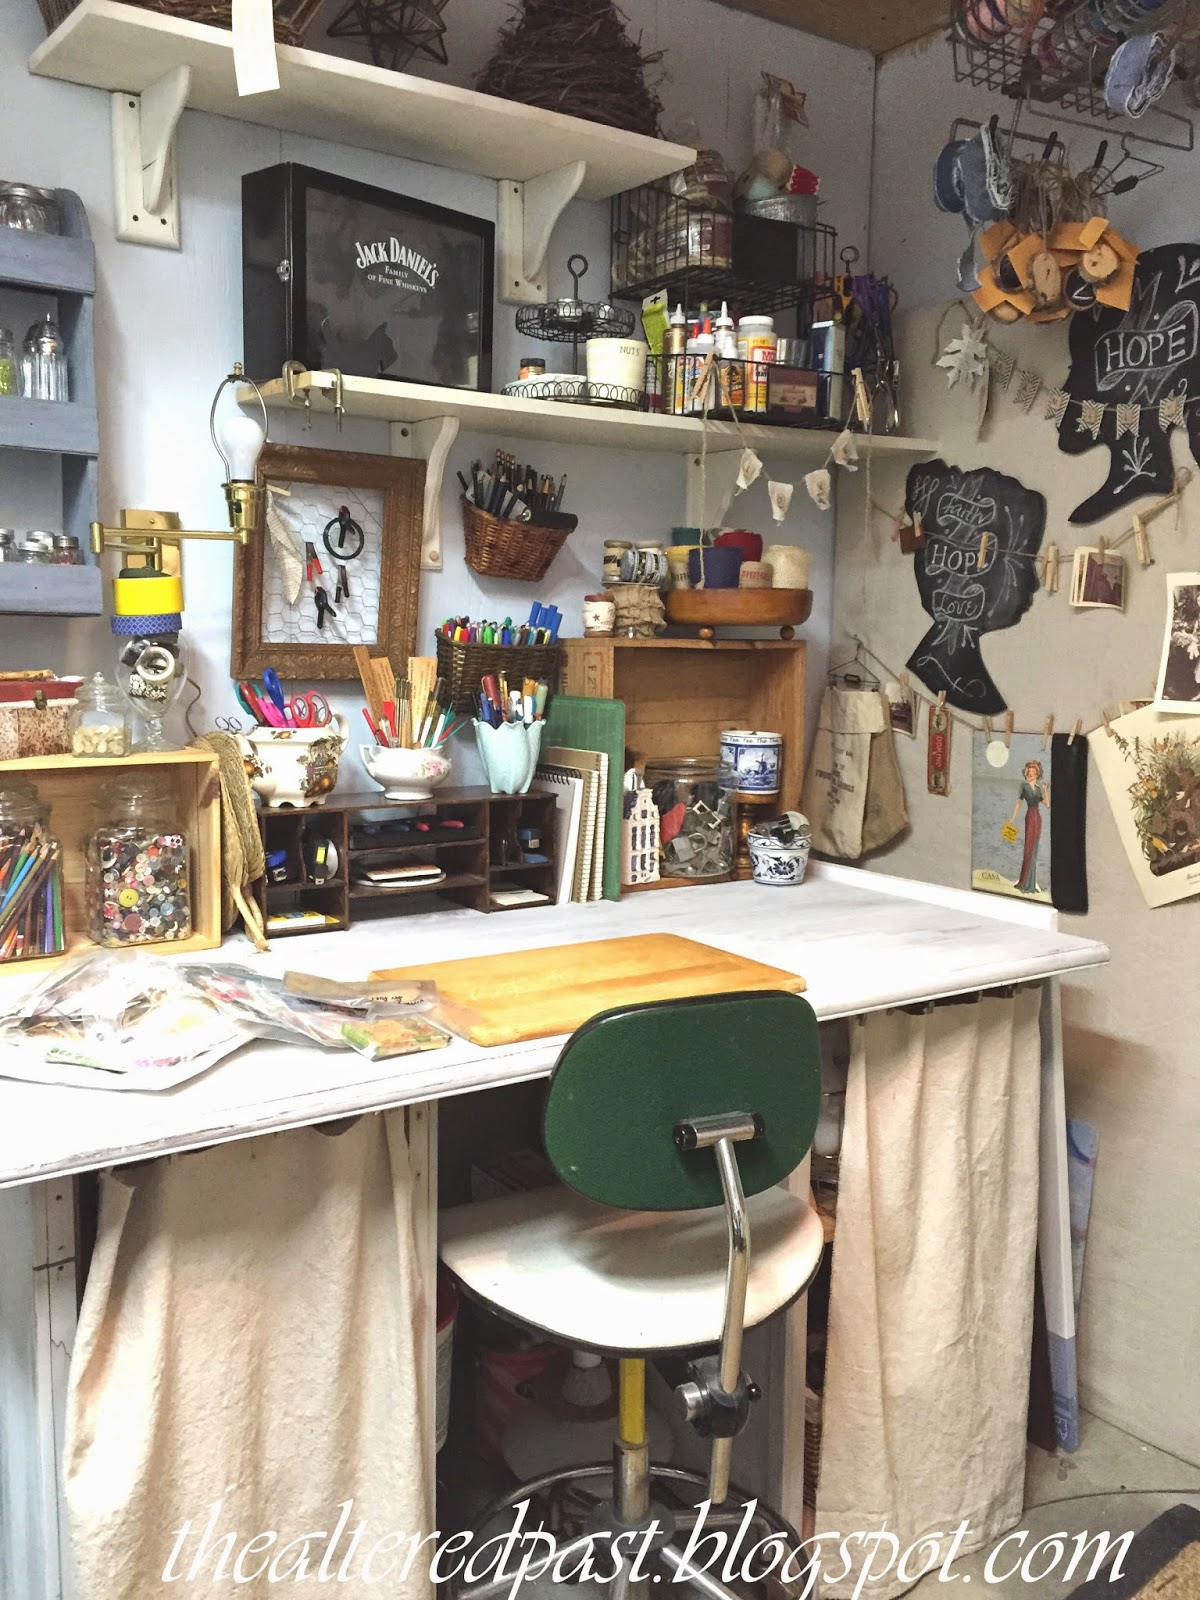 workroom art studio, organization, the altered past blog